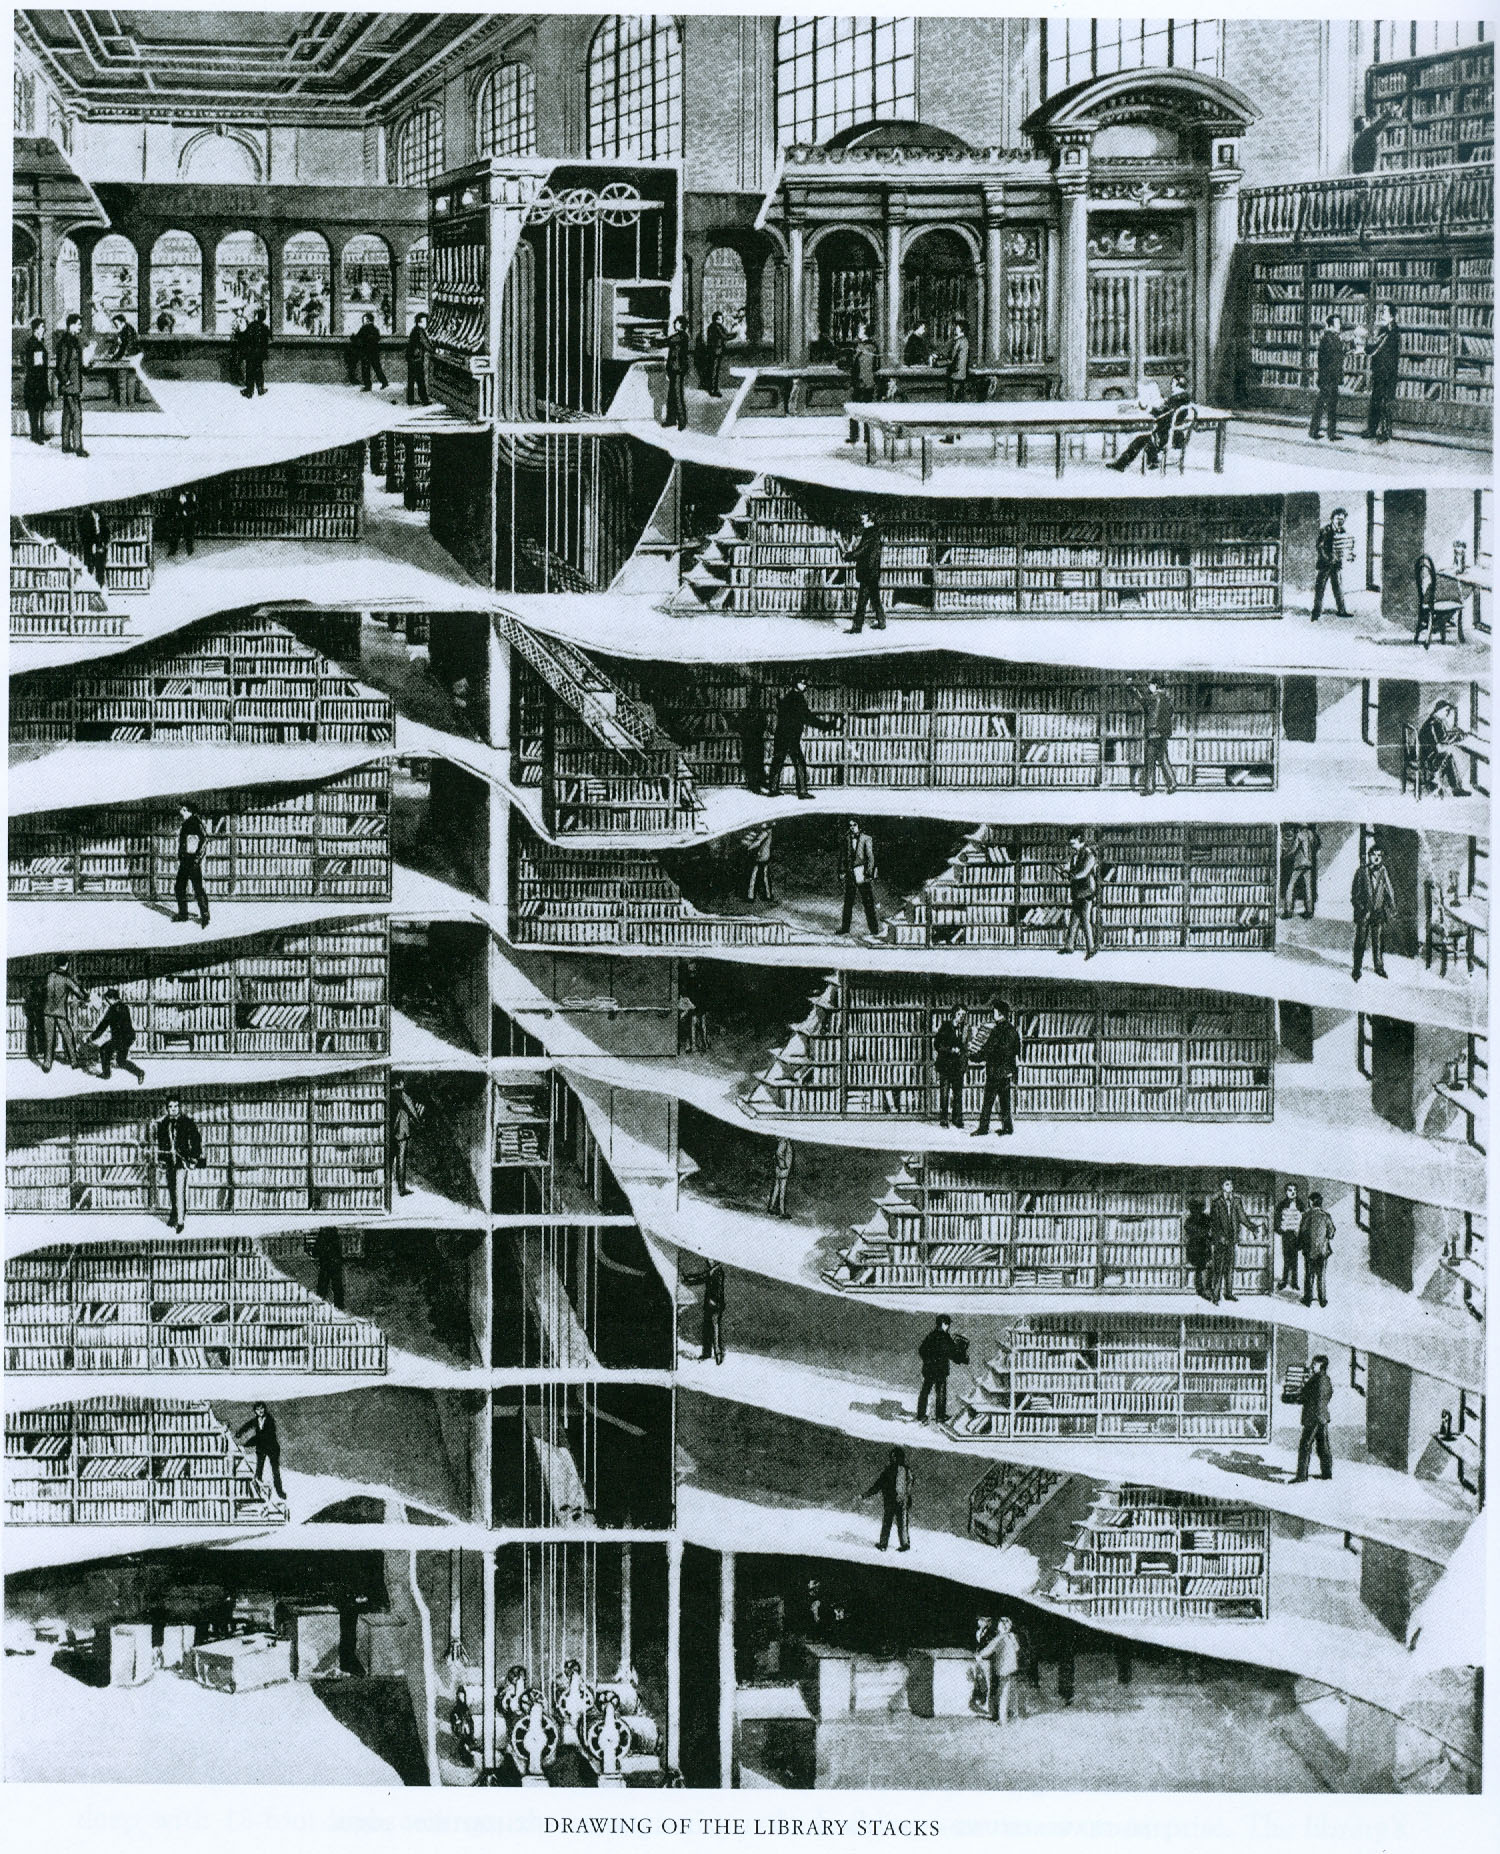 cross-section-of-new-york-public-library-7-underground-levels-1911